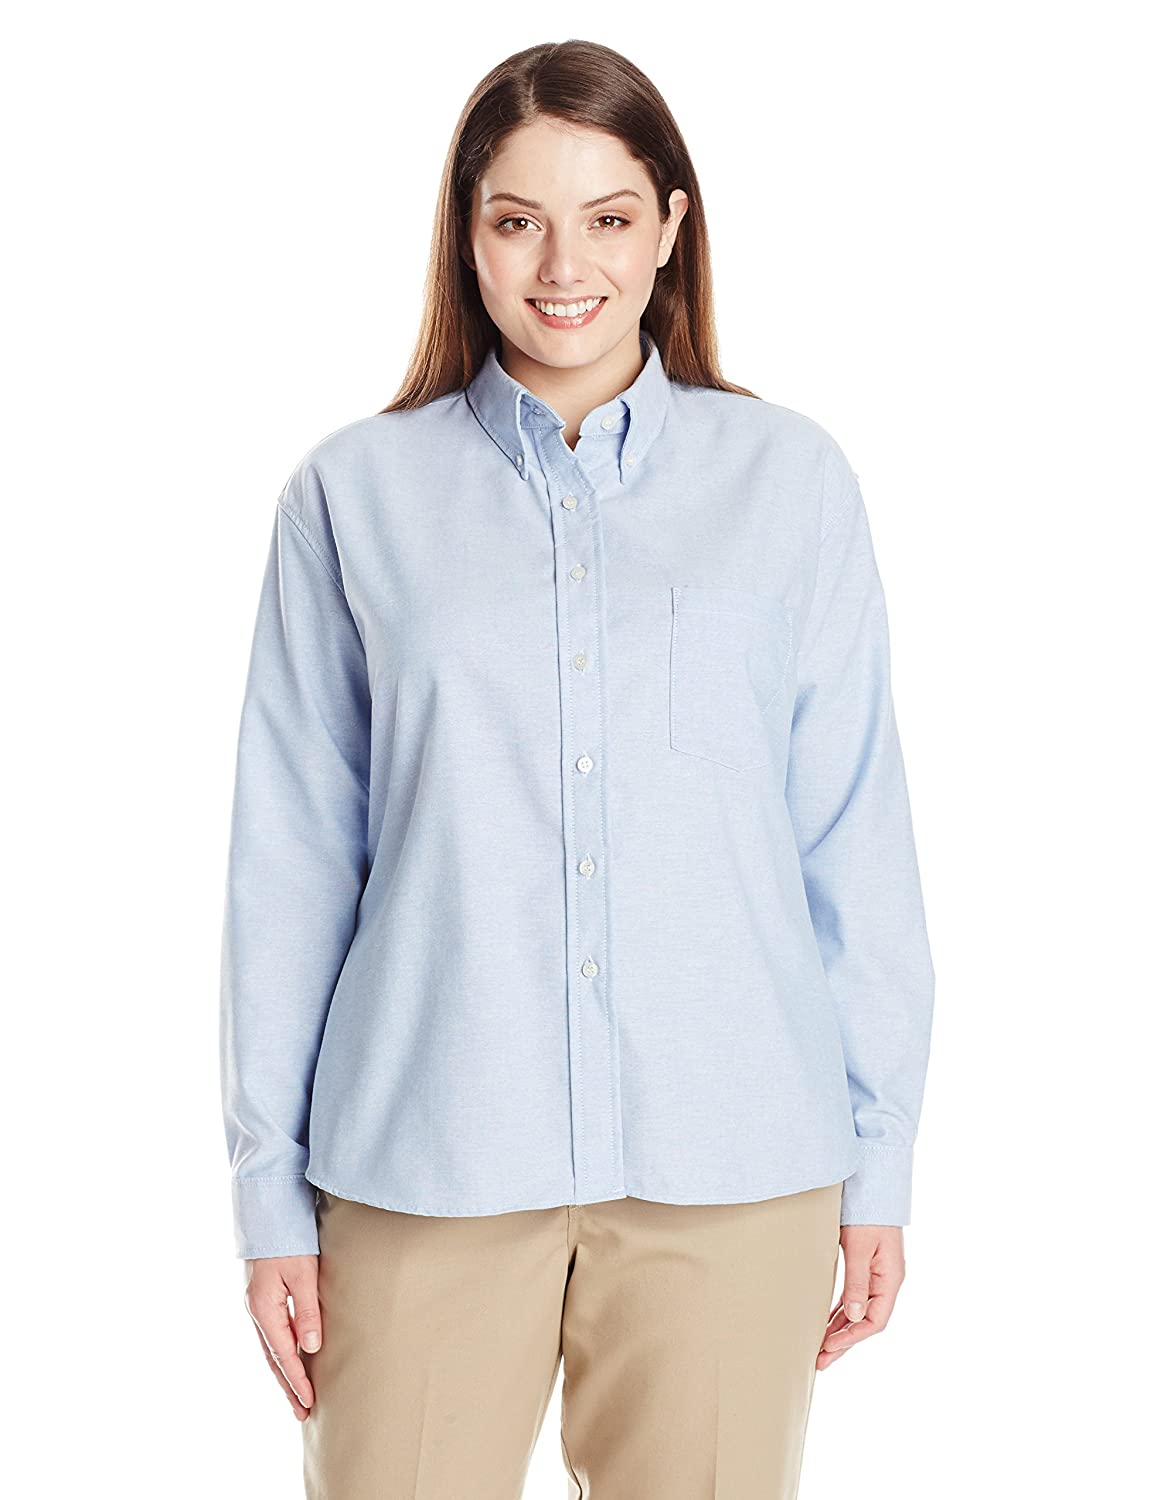 Women dress shirt